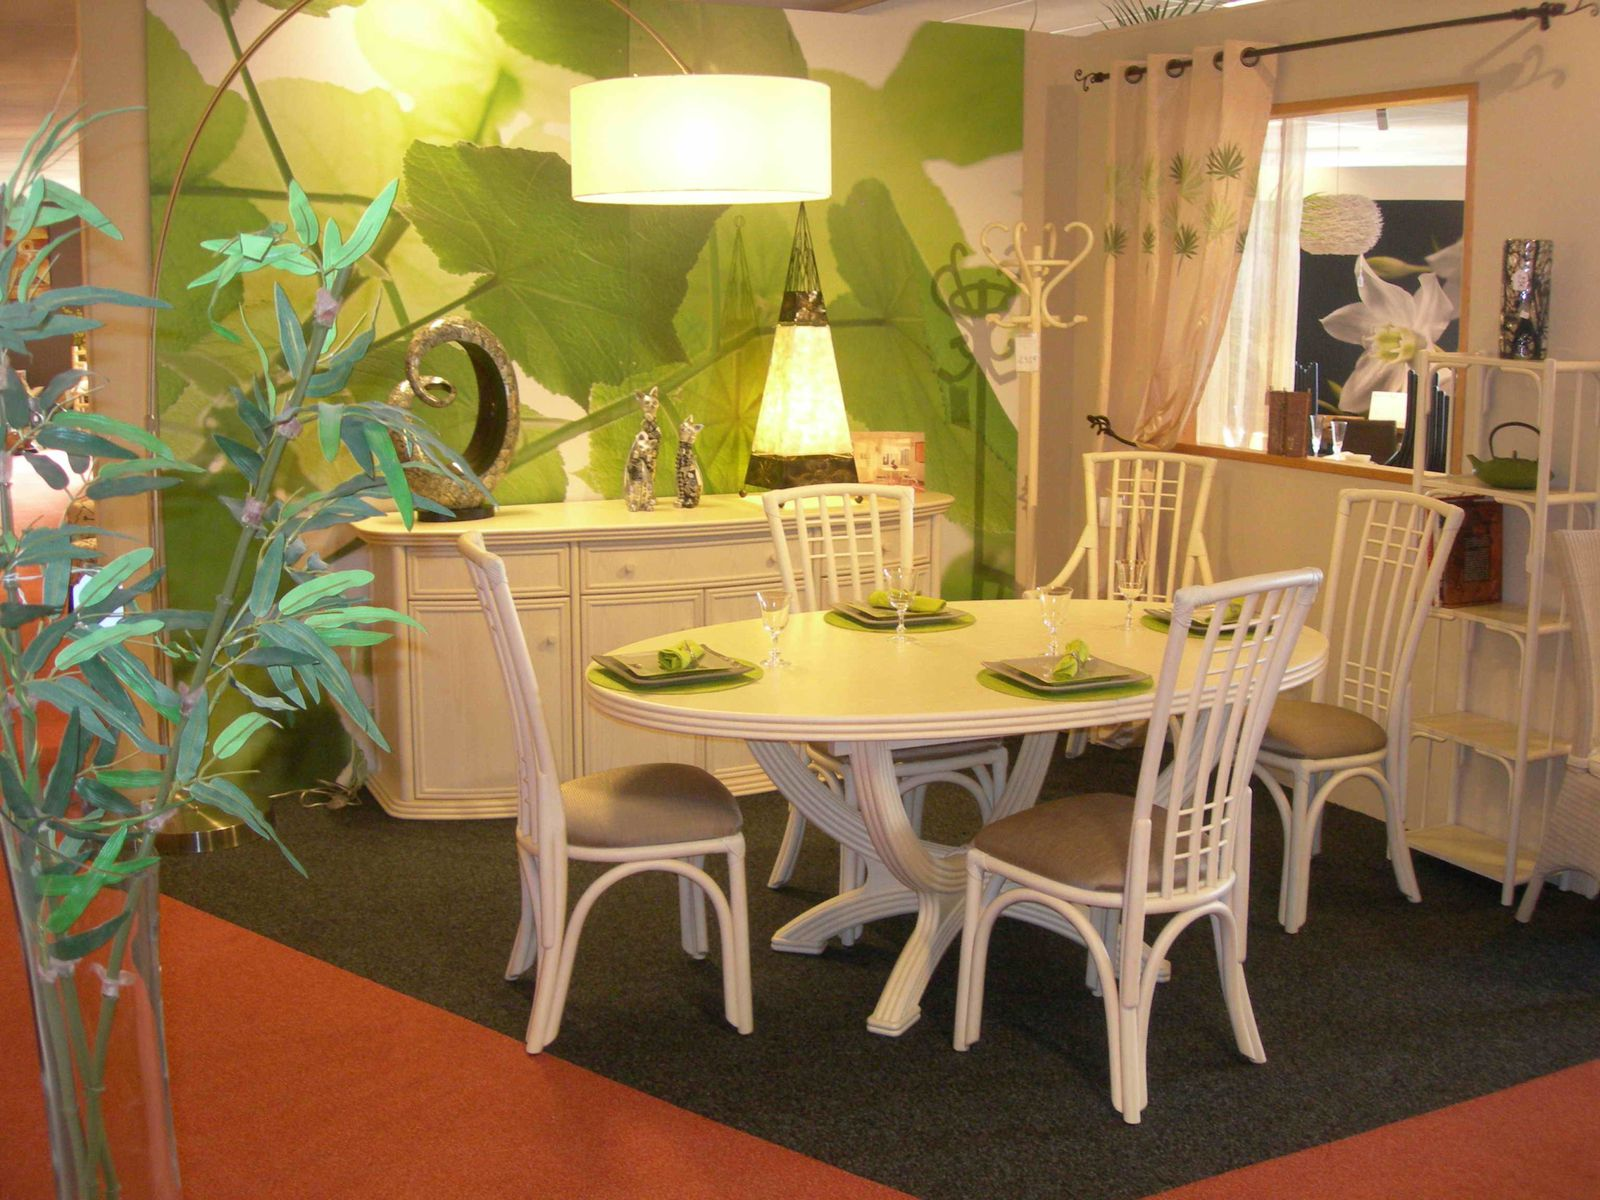 Album sejours exodia home design tables ceramique for Meubles salle a manger rotin